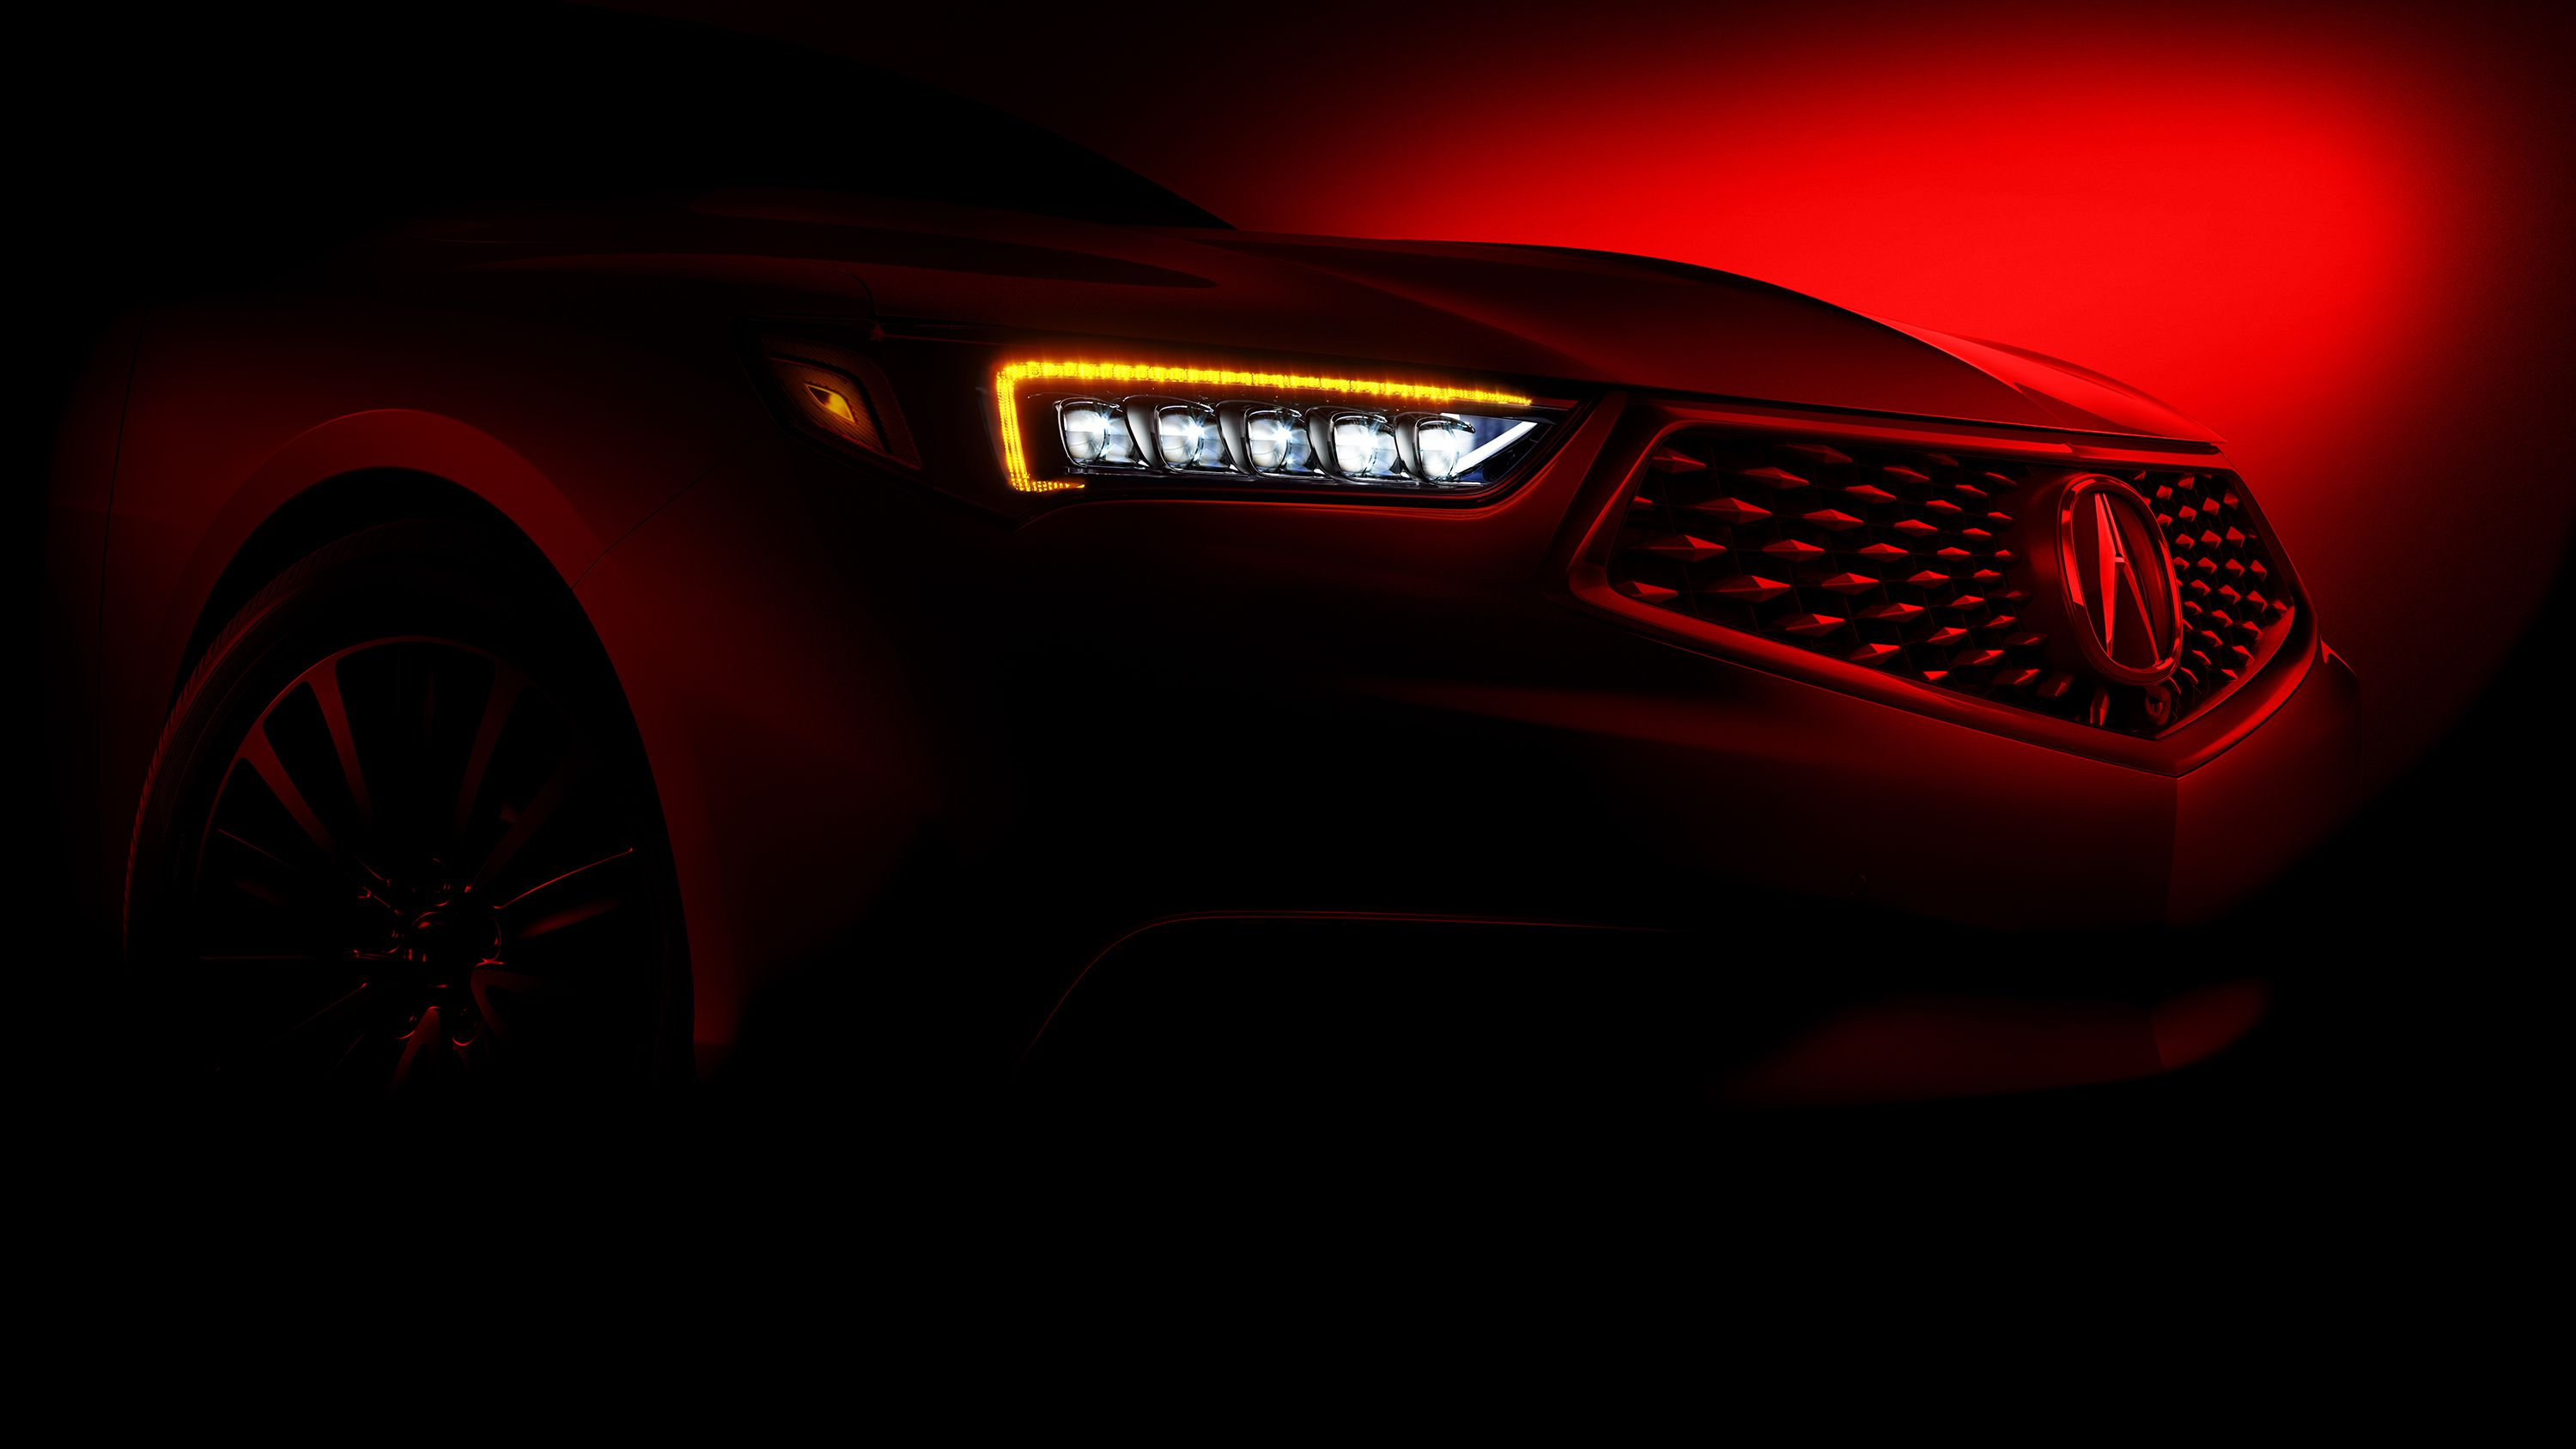 Download Acura TLX Computer Backgrounds 319 3000x1688 px High